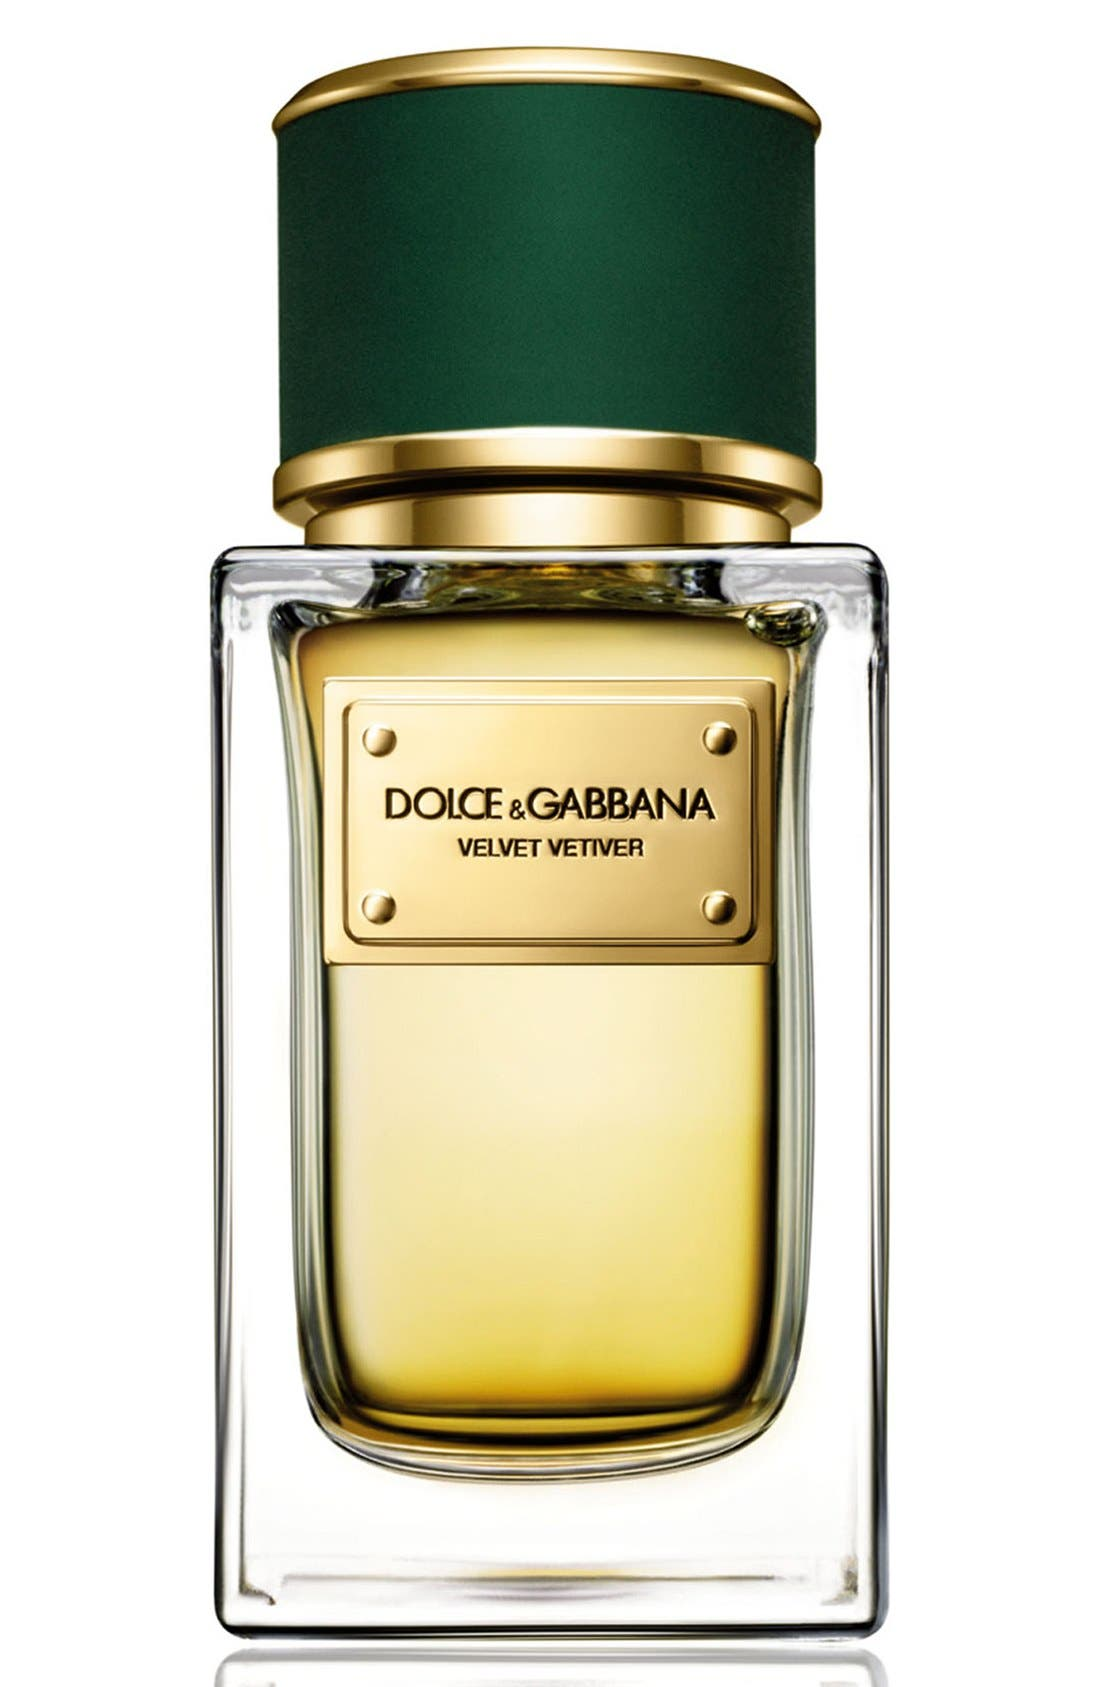 Dolce&Gabbana Beauty 'Velvet Vetiver' Eau de Parfum,                             Main thumbnail 1, color,                             000